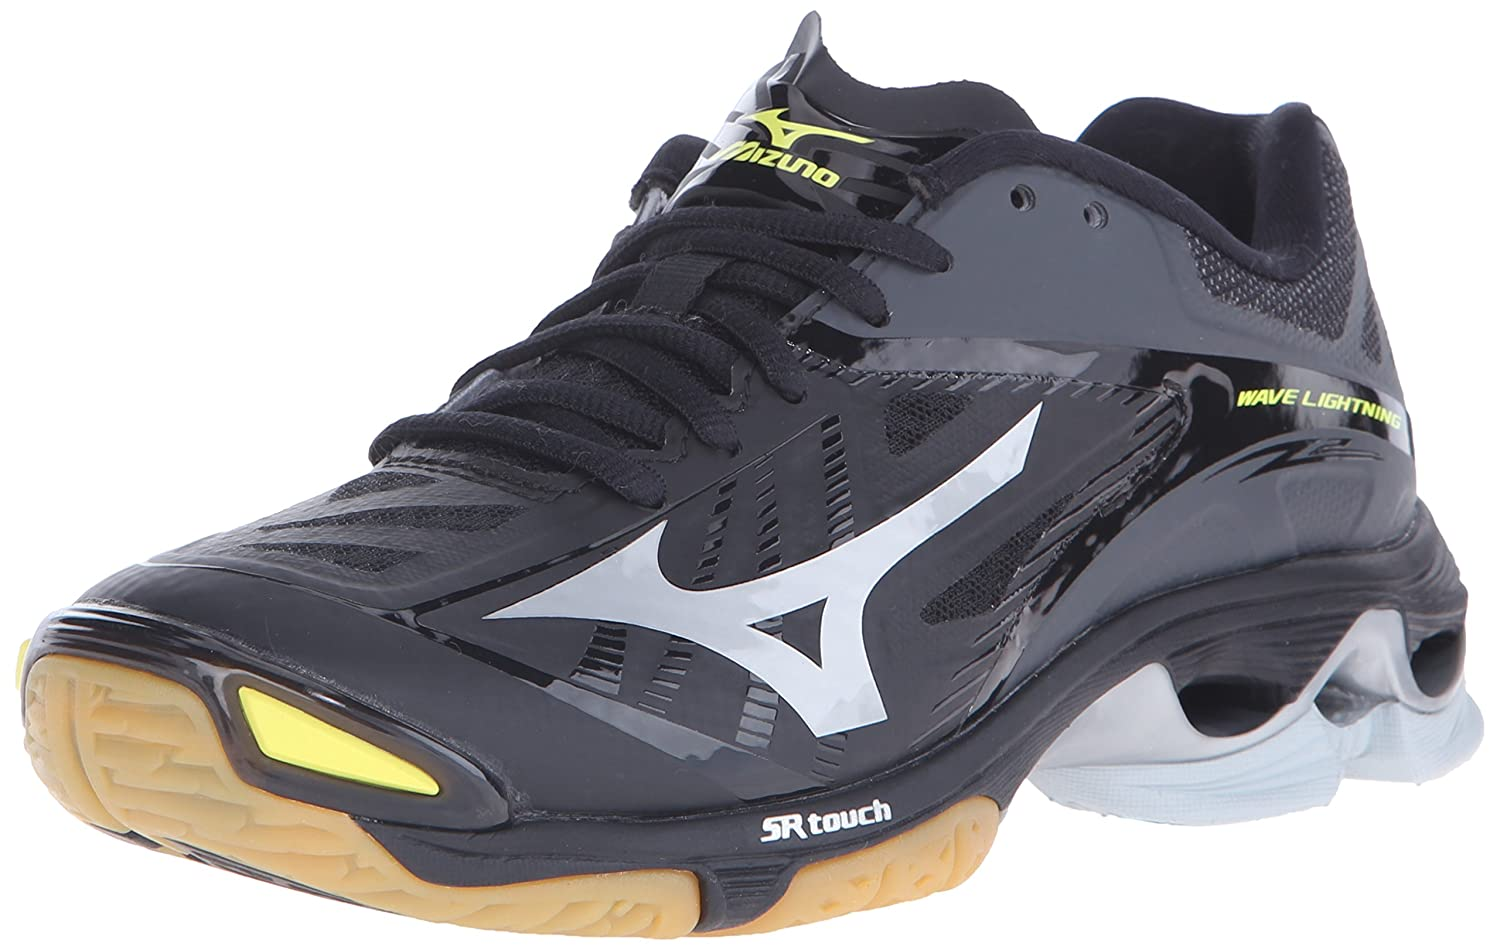 Mizuno Women's Wave Lightning Z2 Volleyball Shoe B01AUPS3CG 6.5 D US|Black/Silver